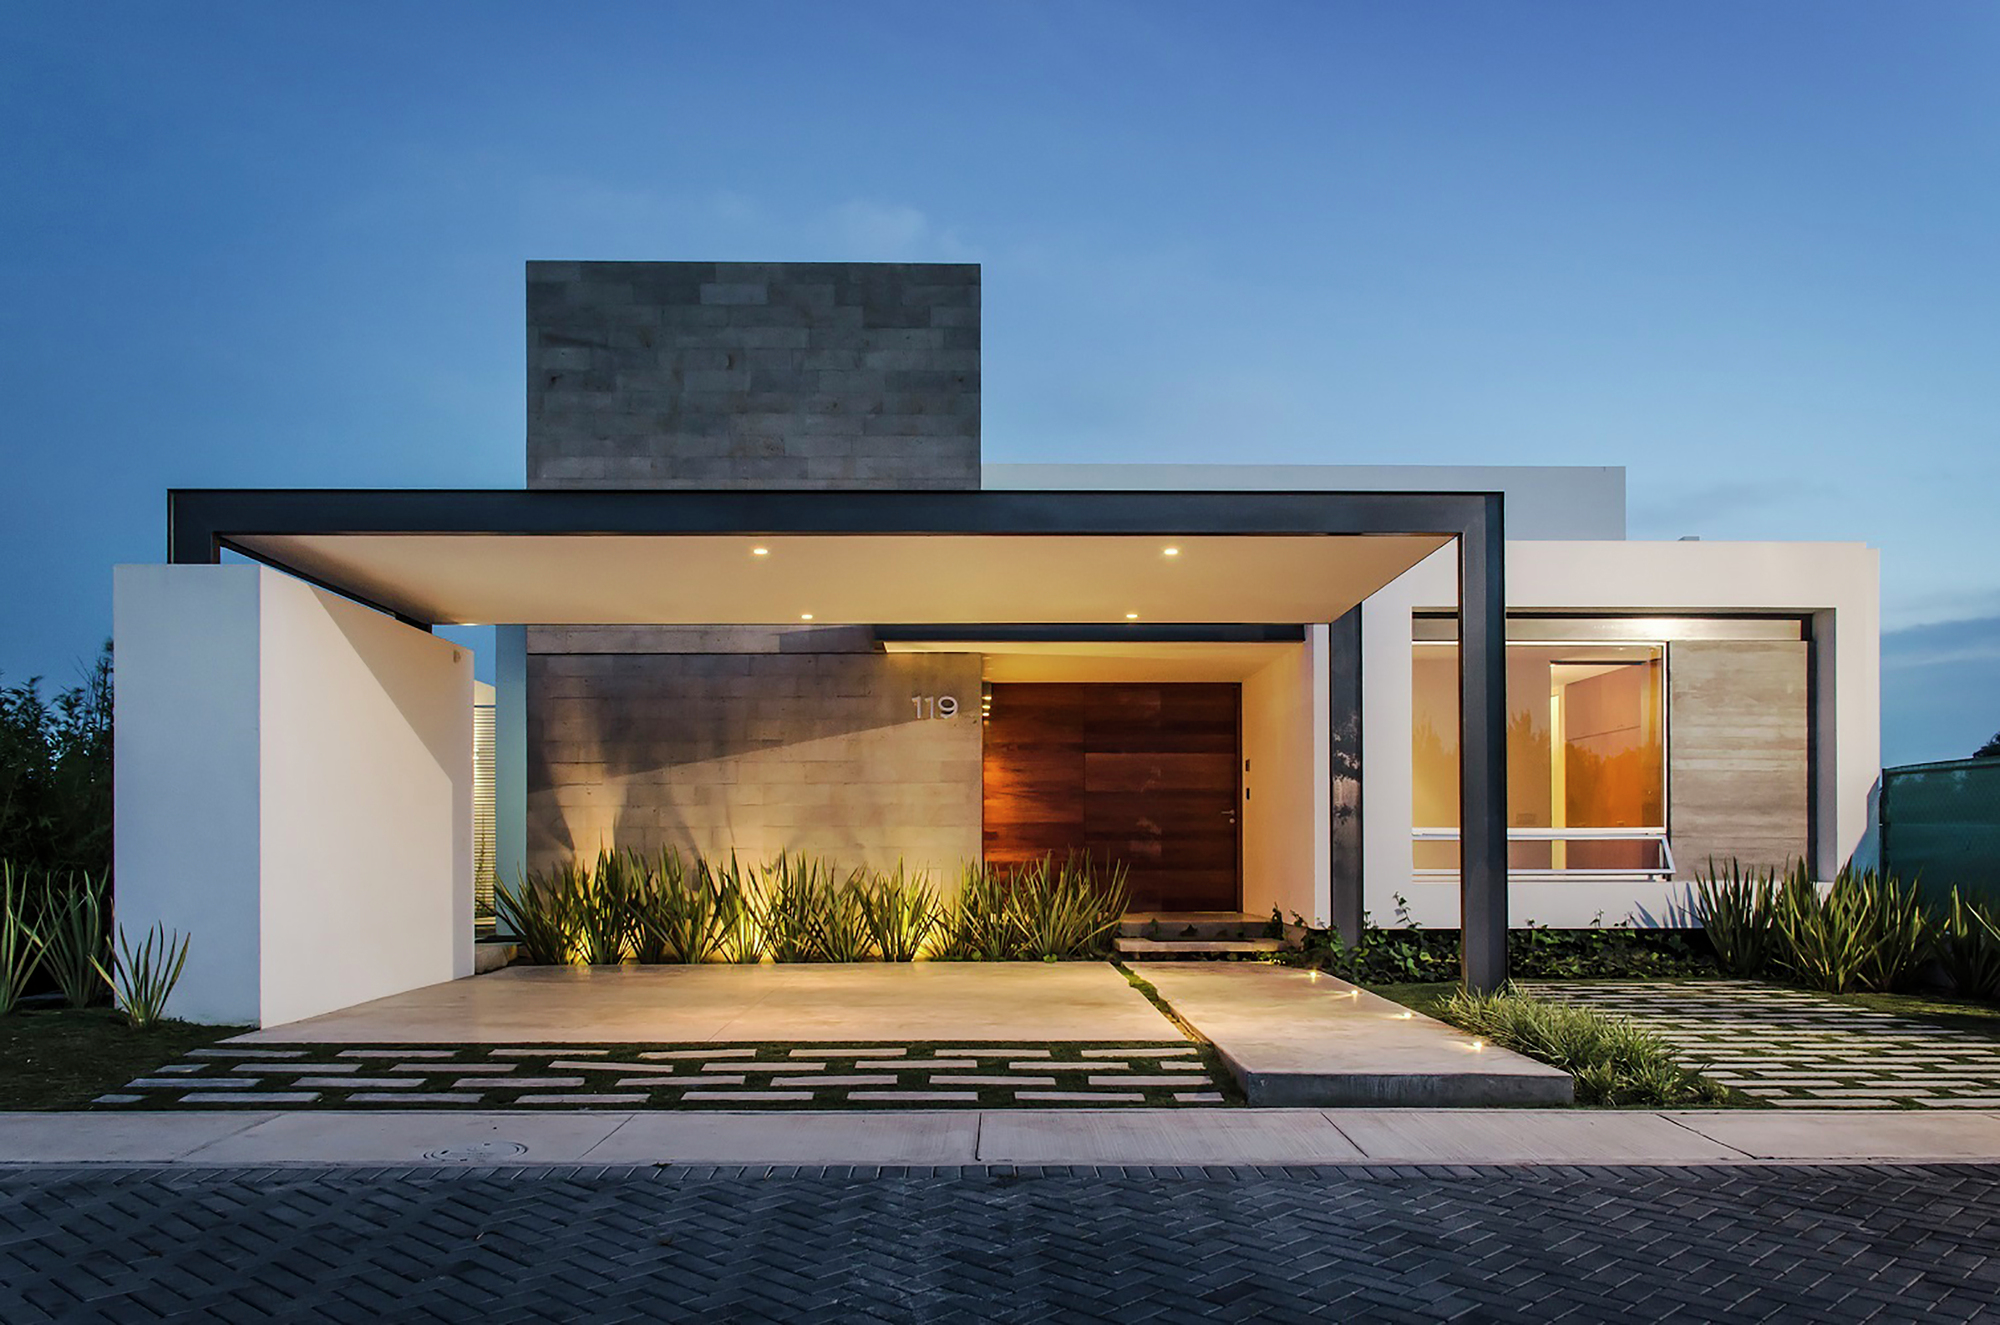 Single Floor Elevation U : Imagenes de fachadas casas modernas minimalistas y